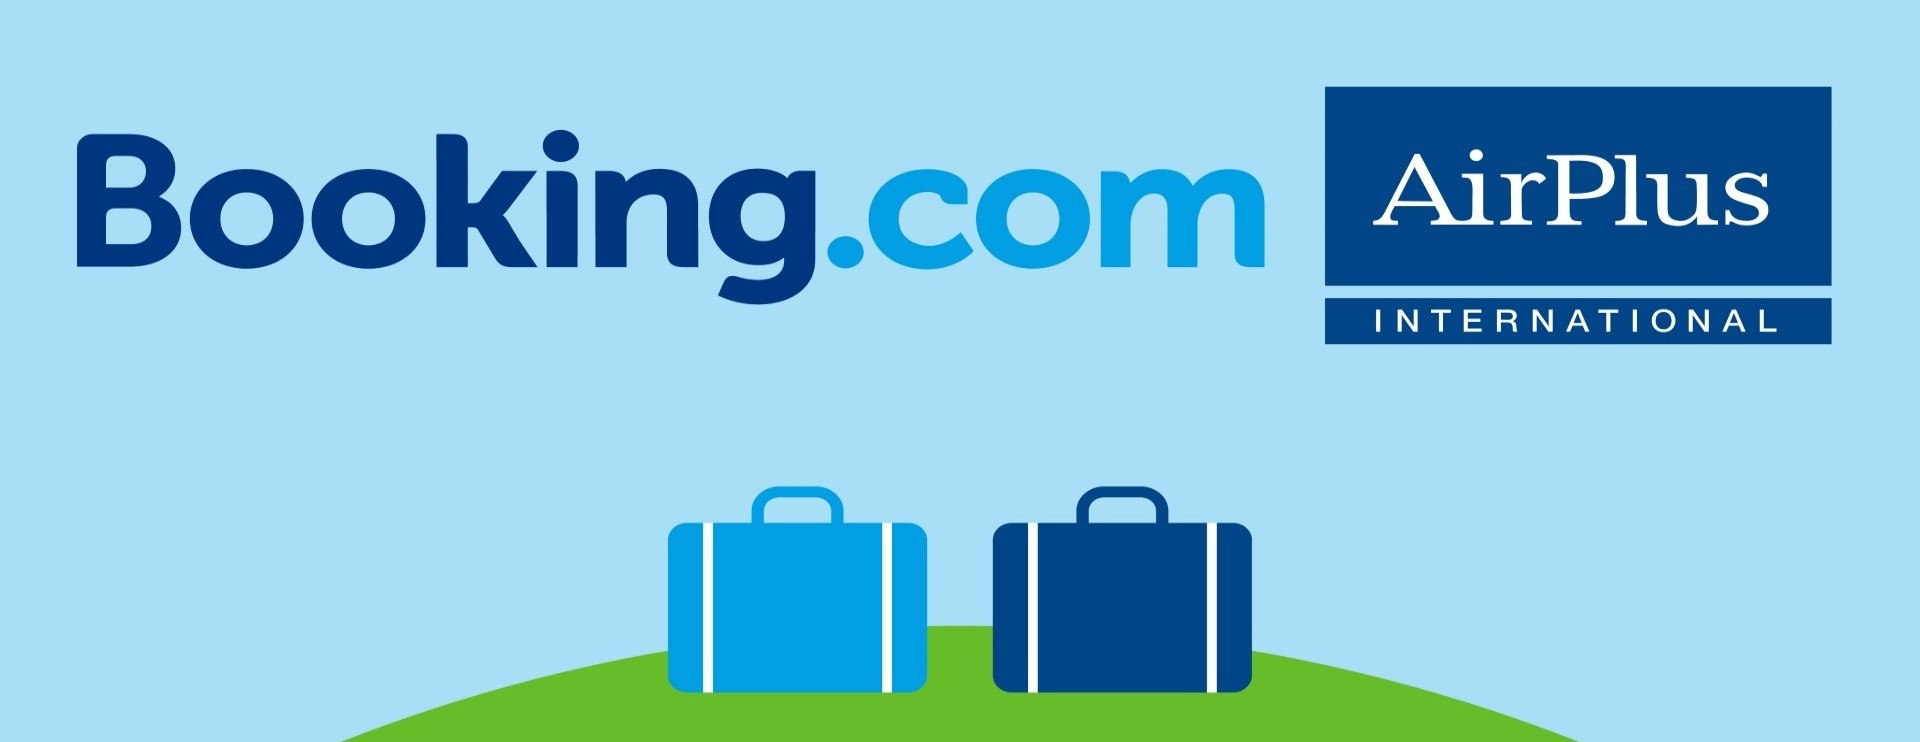 Booking.com in zee met AirPlus